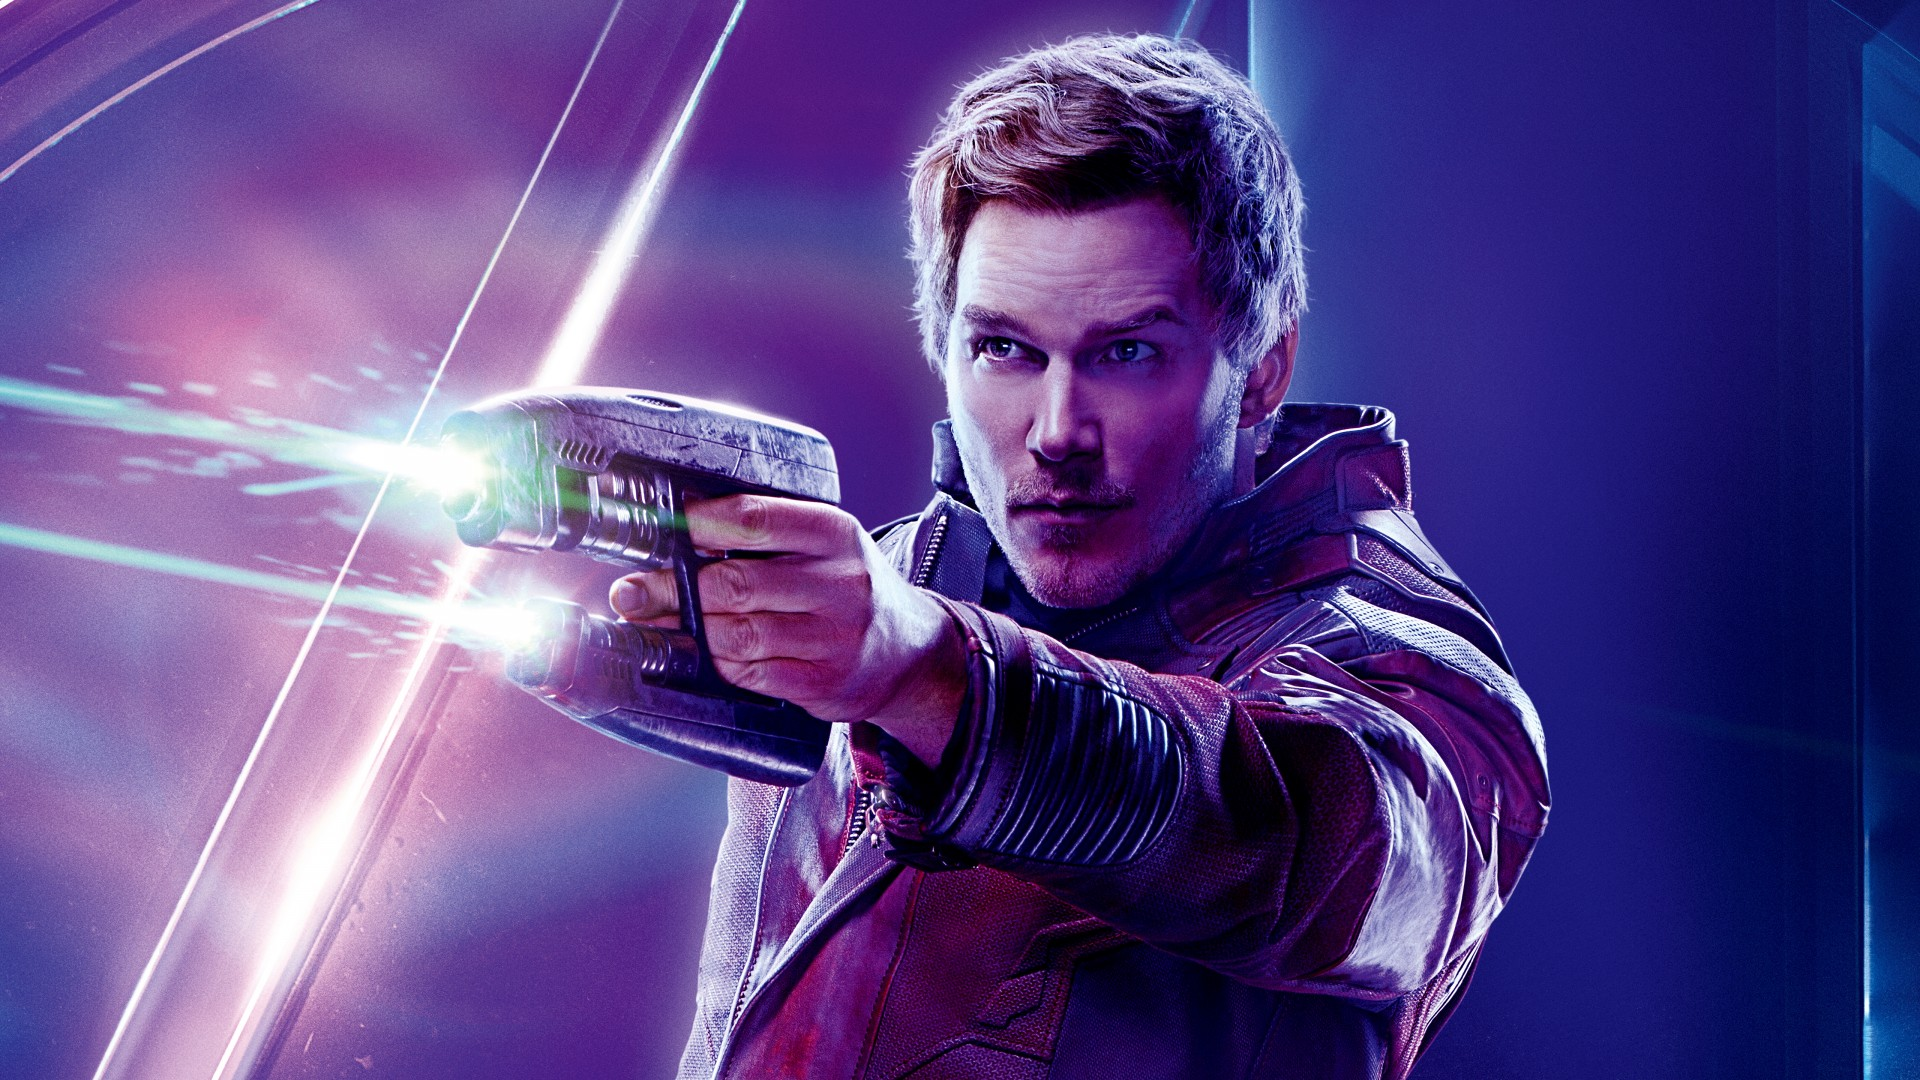 Chris Pratt As Peter Quill Star Lord Download Hd Wallpaper